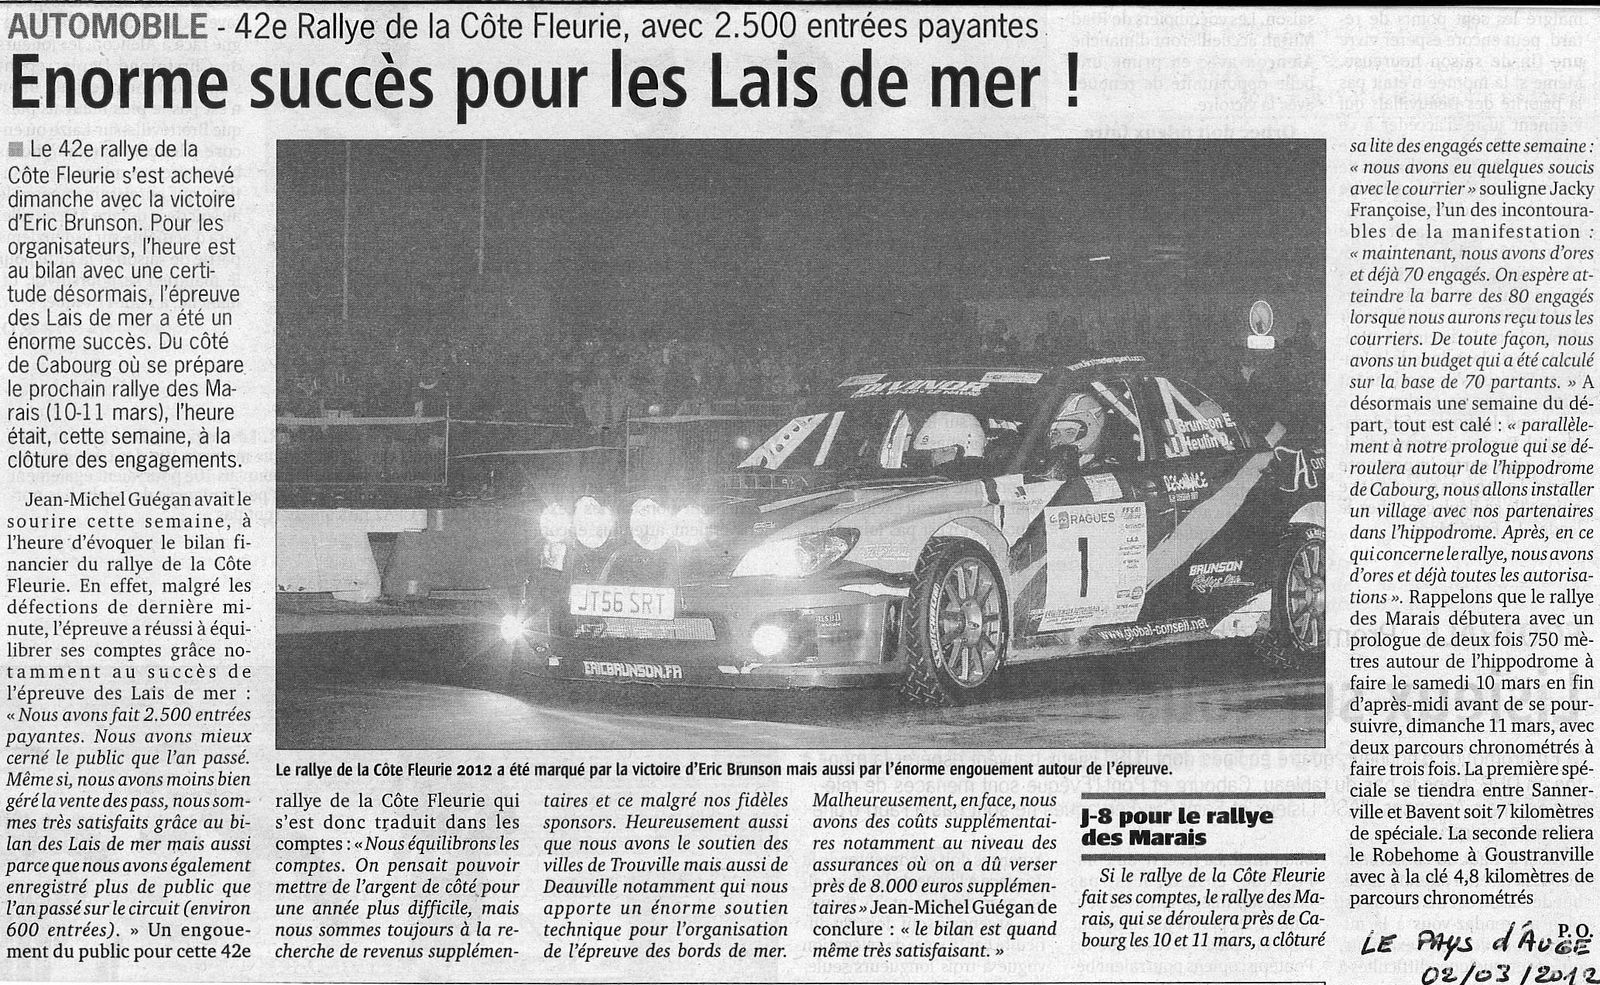 Coupure de presse journal le pays d 39 auge 2 mars 2012 tac sport events - Le journal le pays d auge ...